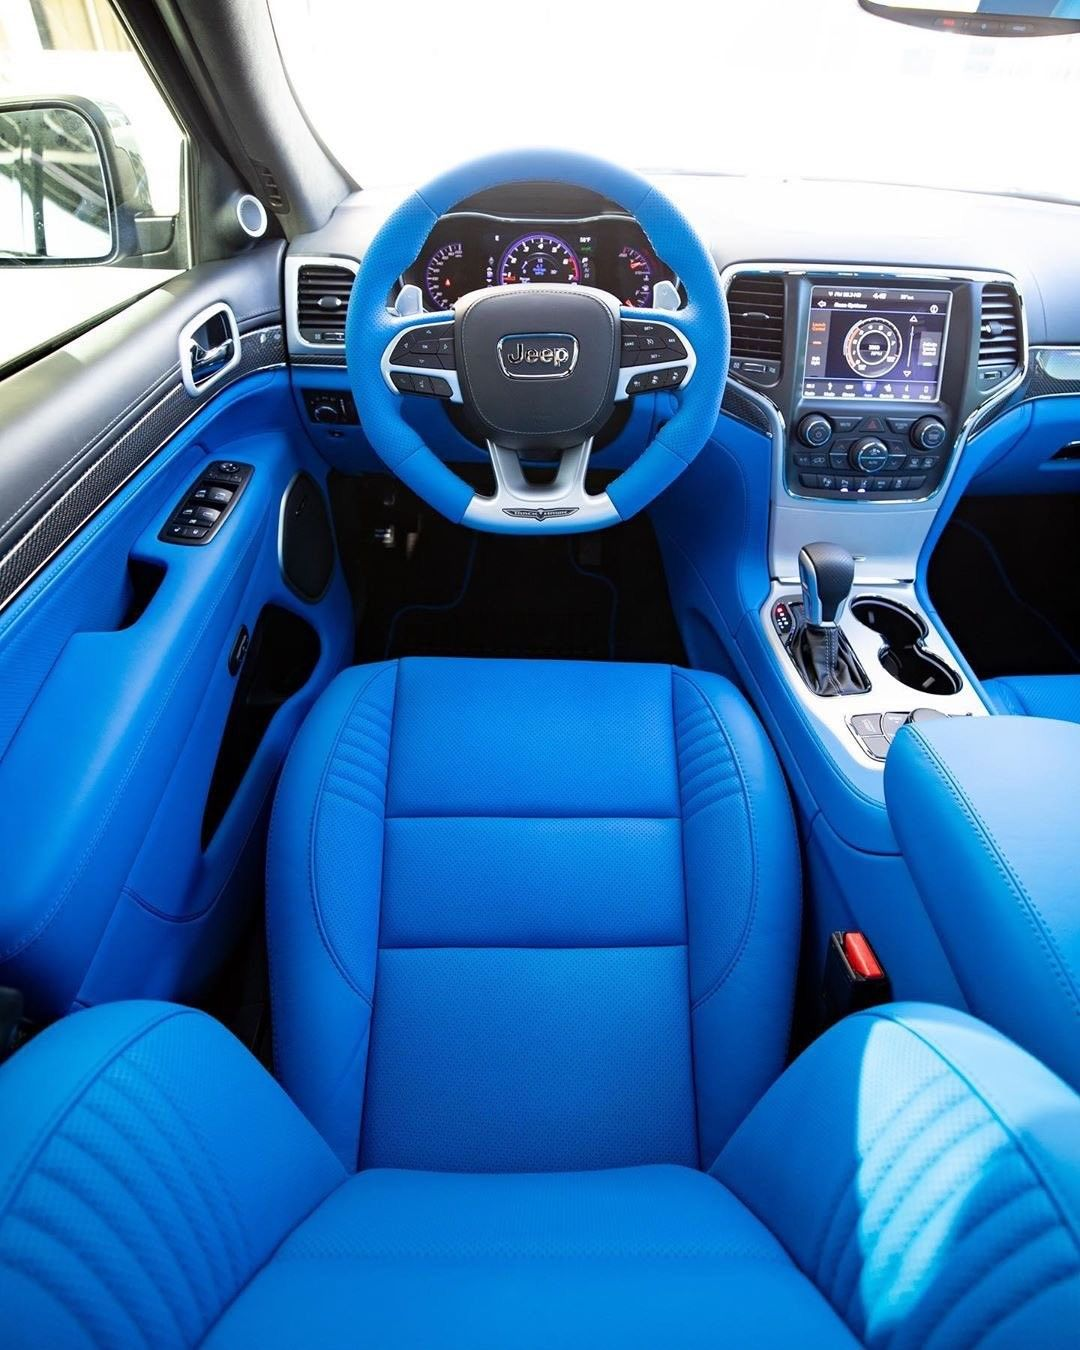 James Harden Went Crazy With The Full Blue Interior In His Trackhawk In 2020 Car Inspiration Car Seats Blue Interior